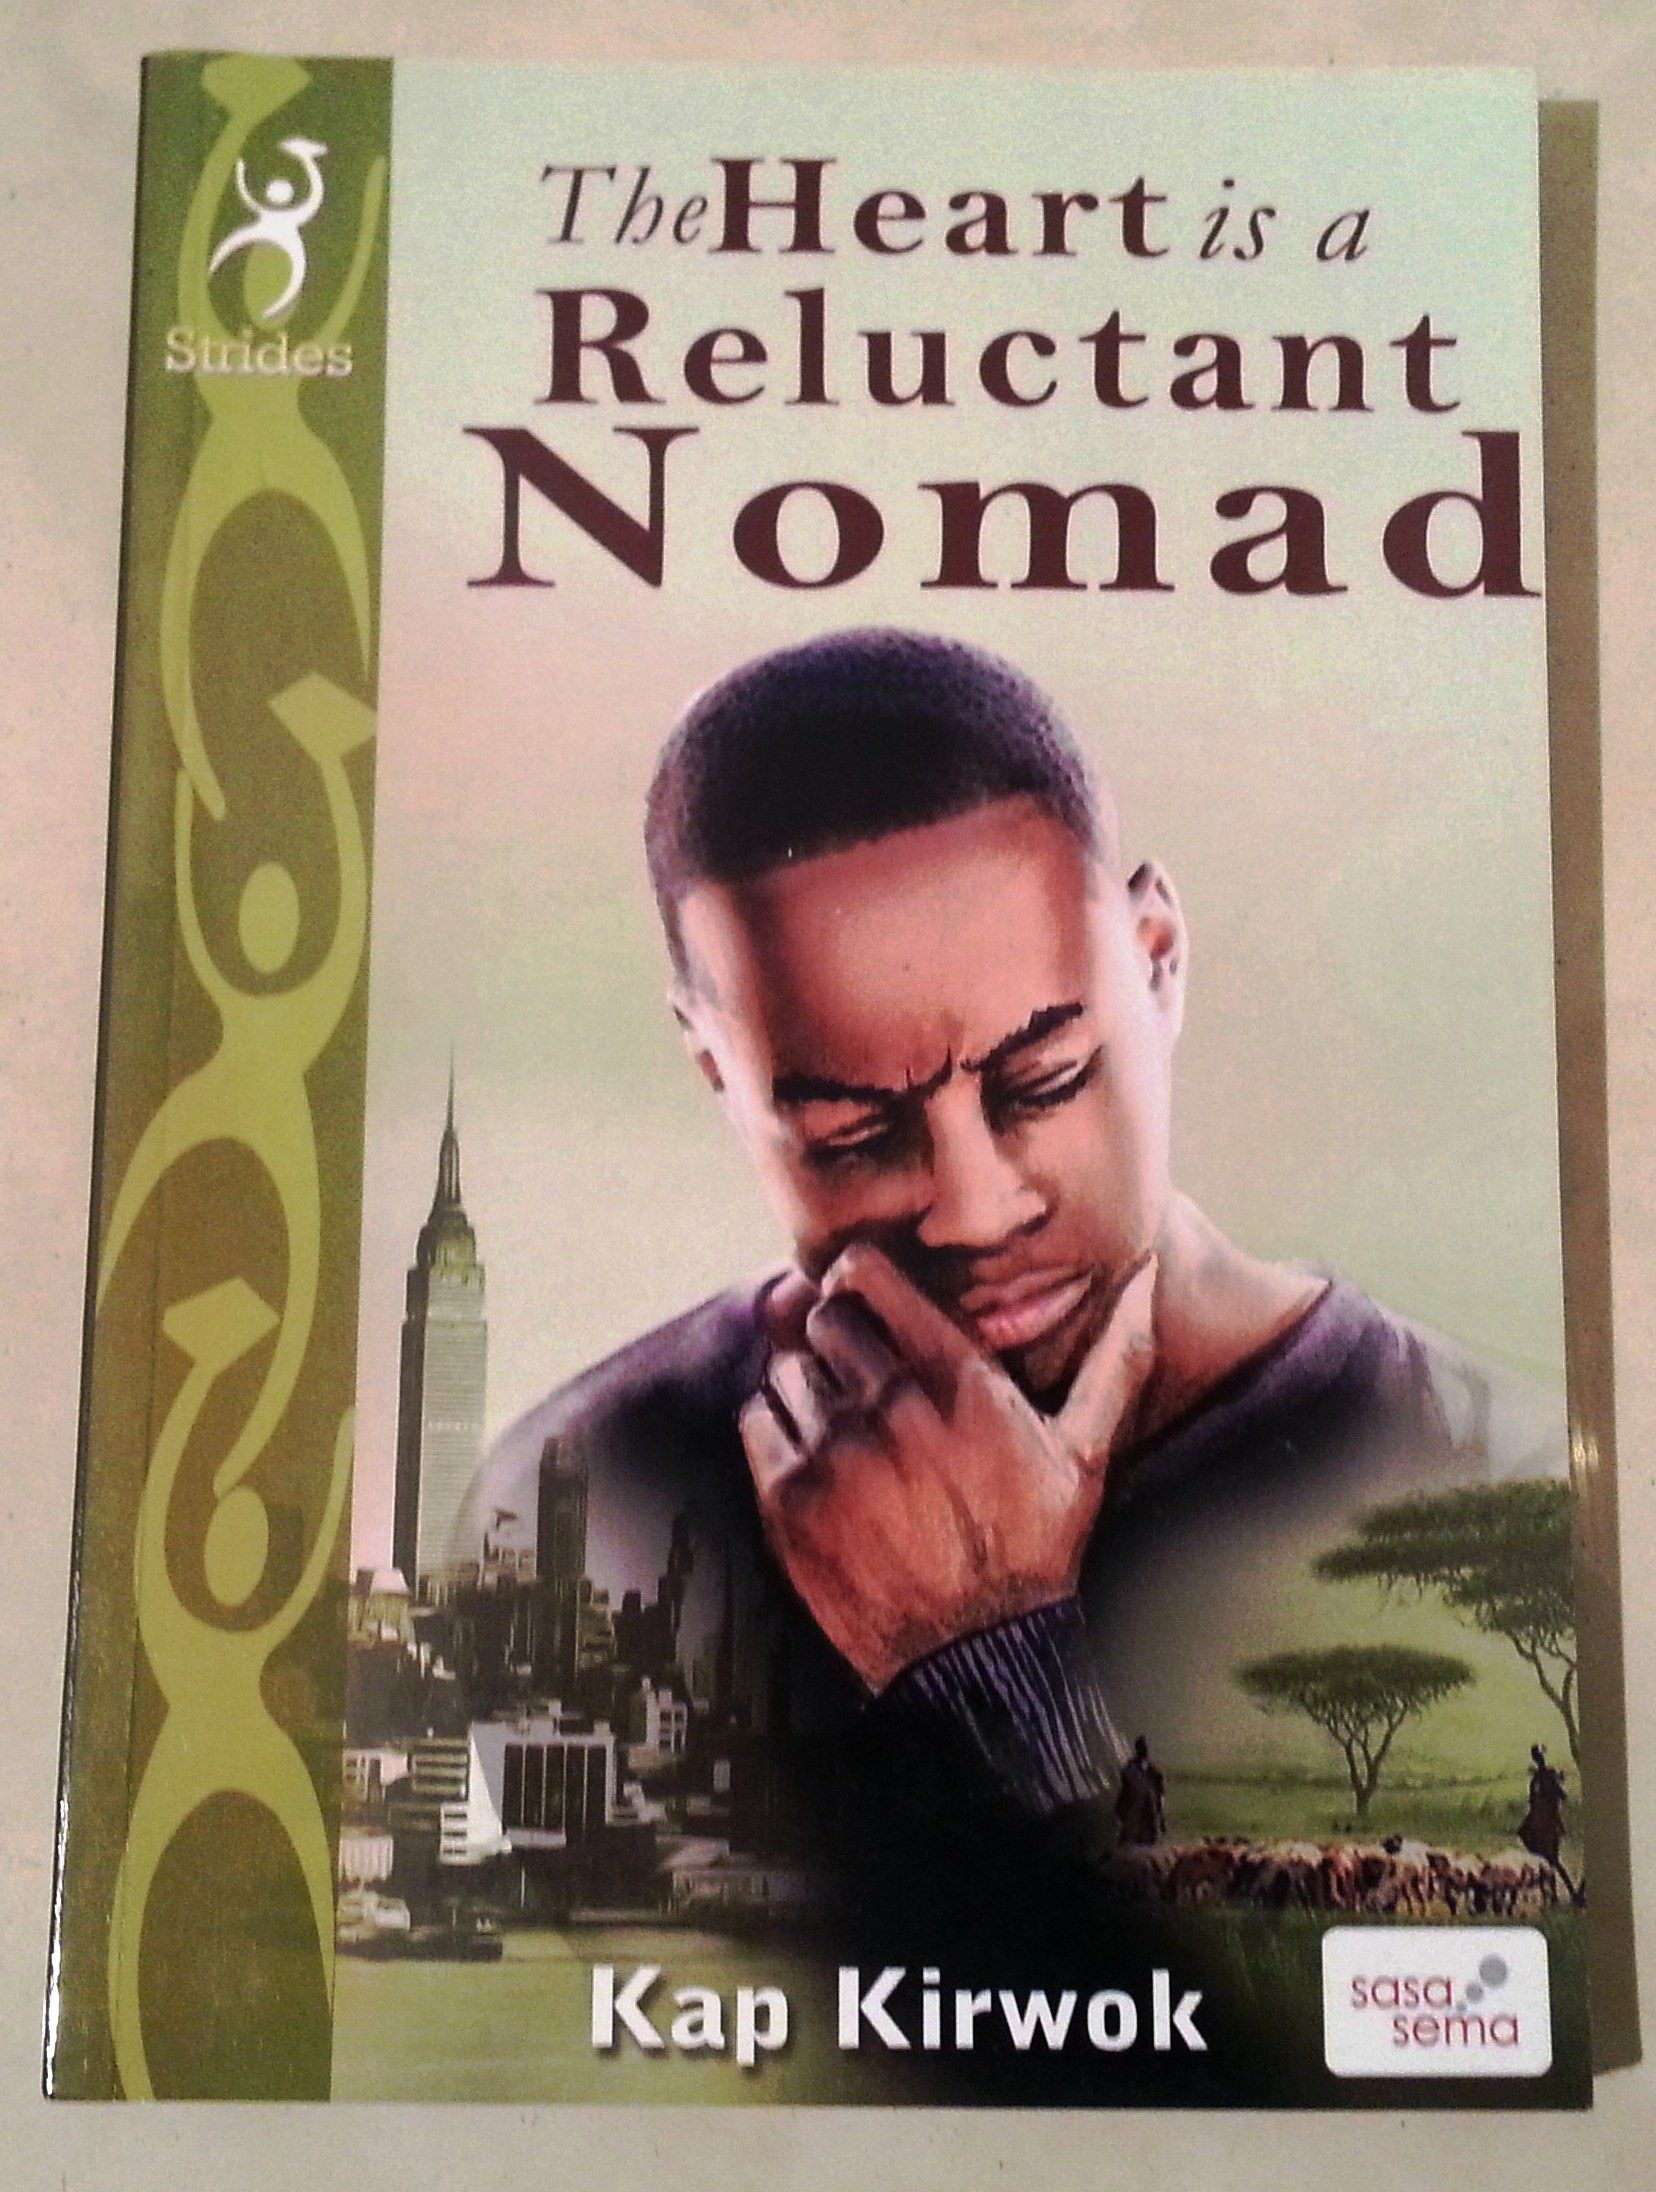 The Heart is a Reluctant Nomad